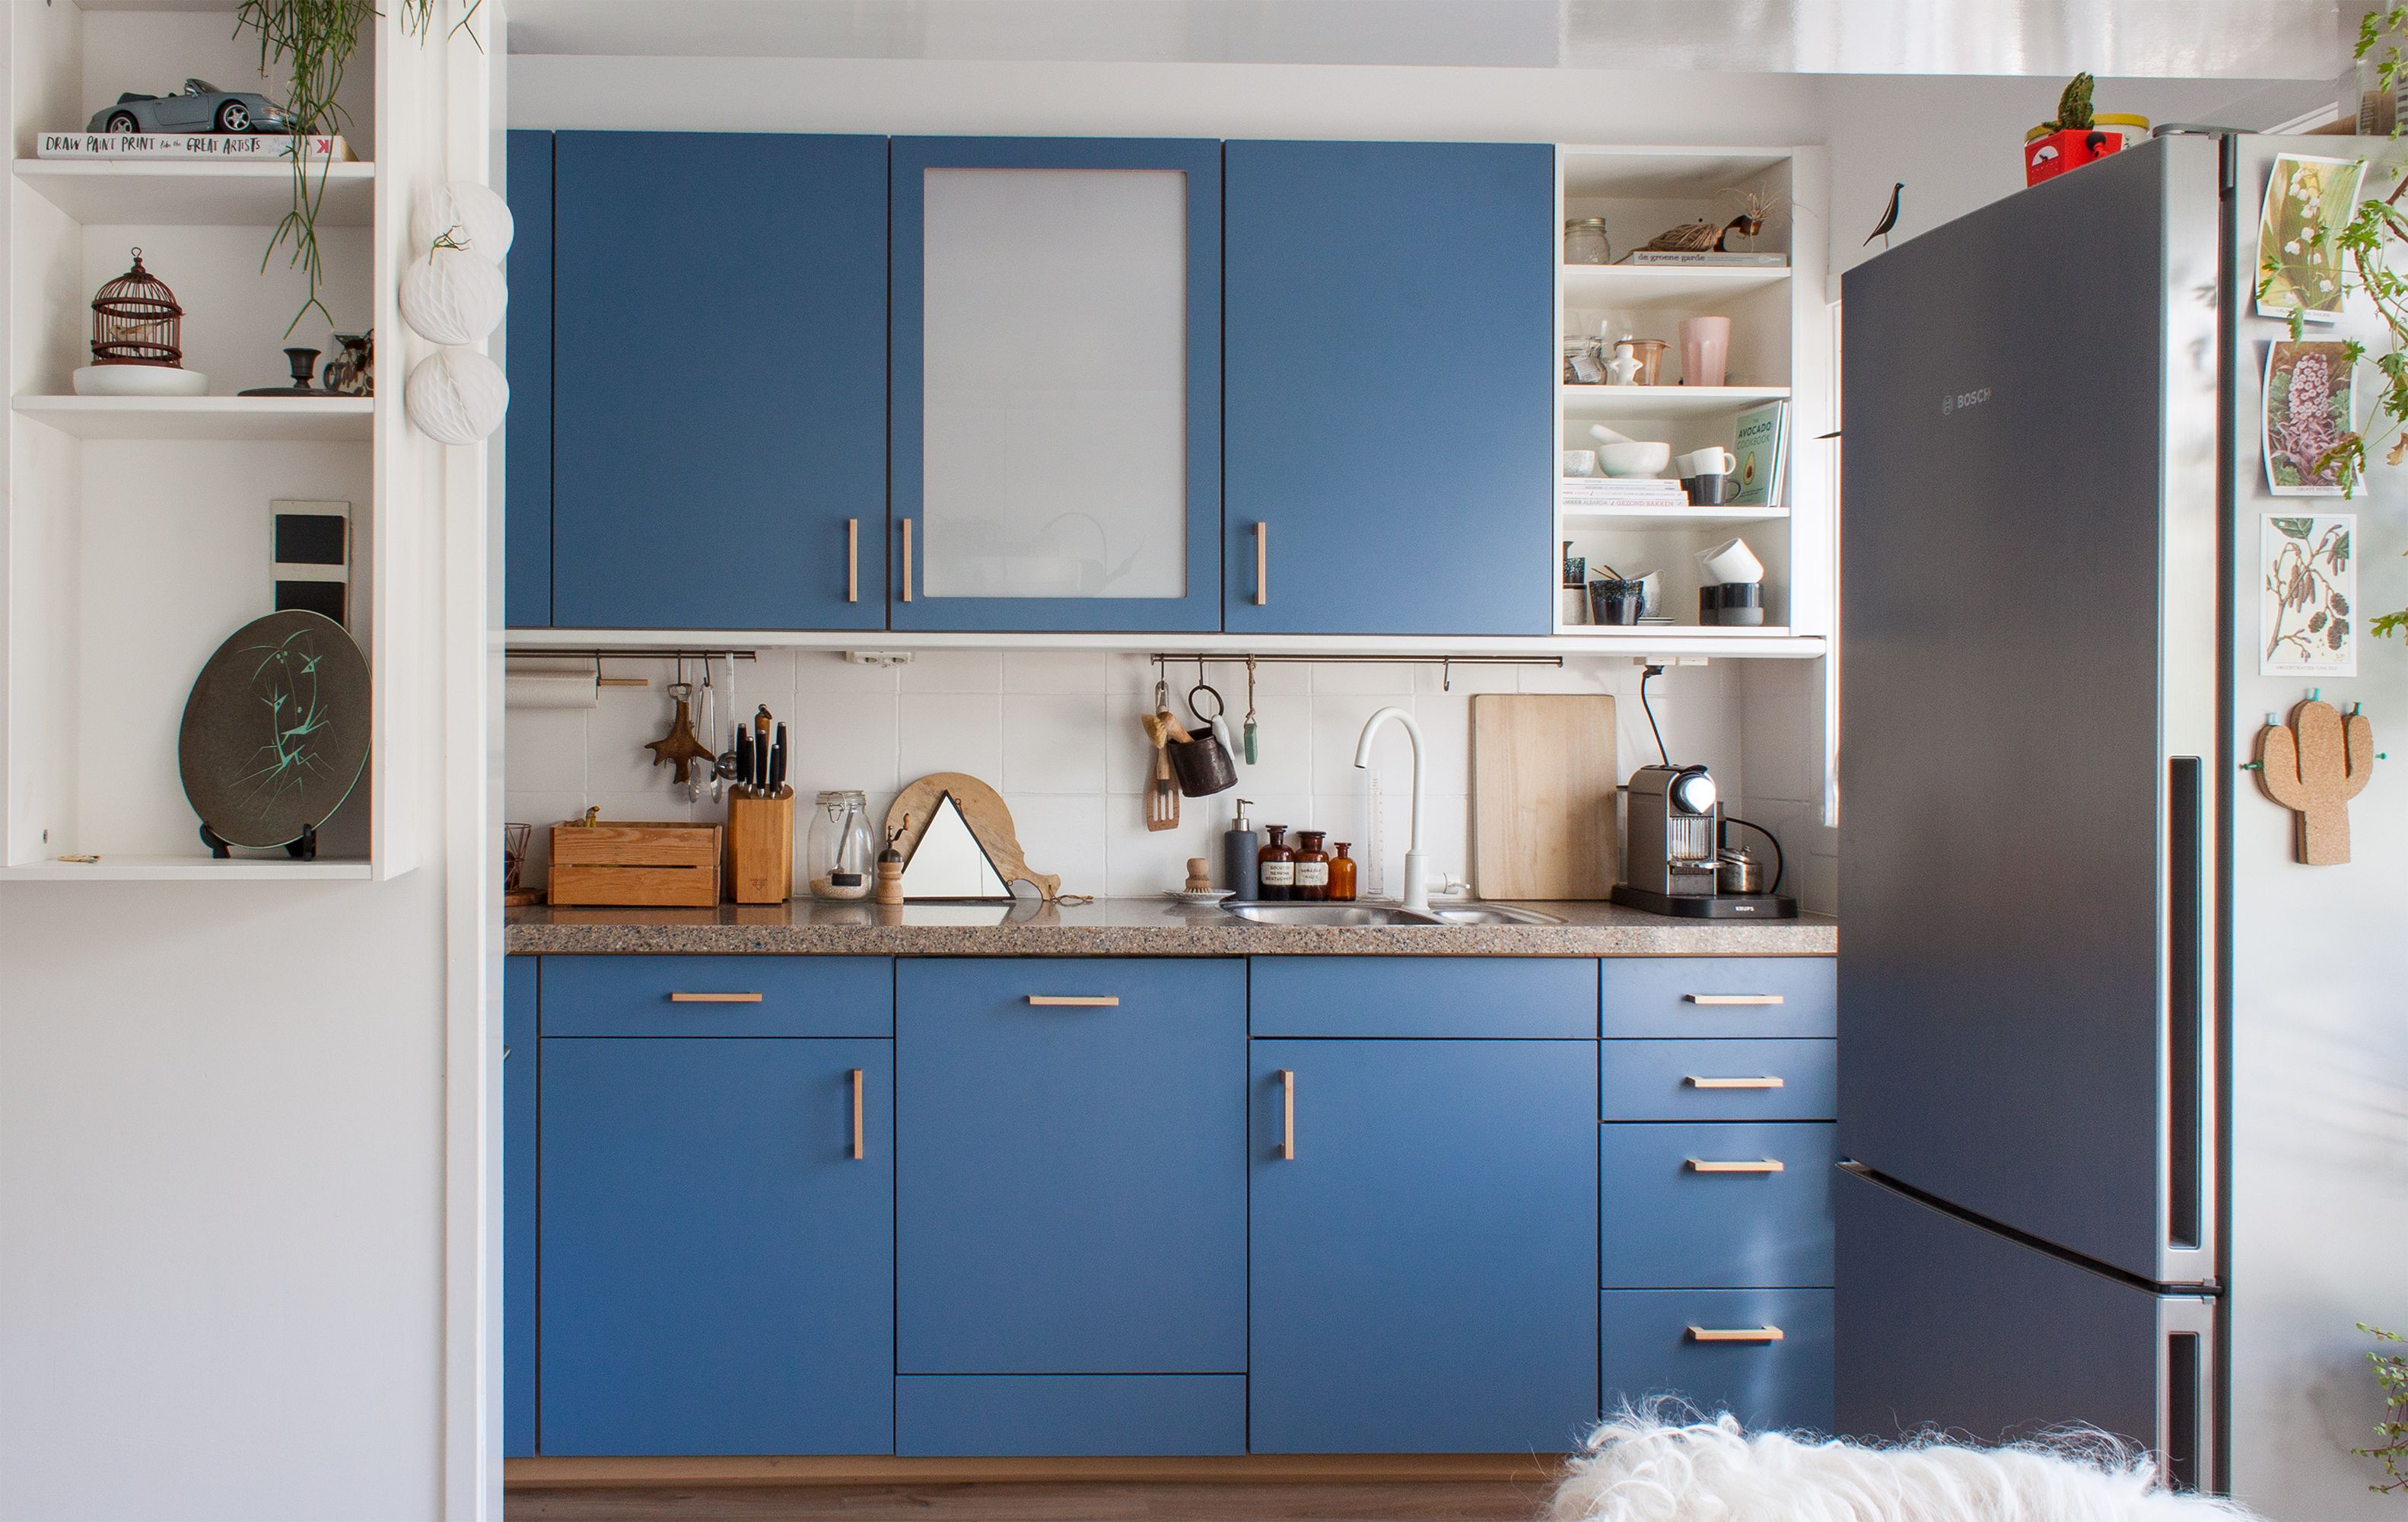 35 Of The Very Best Ideas And Solutions For Your Small Kitchen In 2020 Minimalist Kitchen Design Kitchen Design Small Kitchen Cupboard Designs